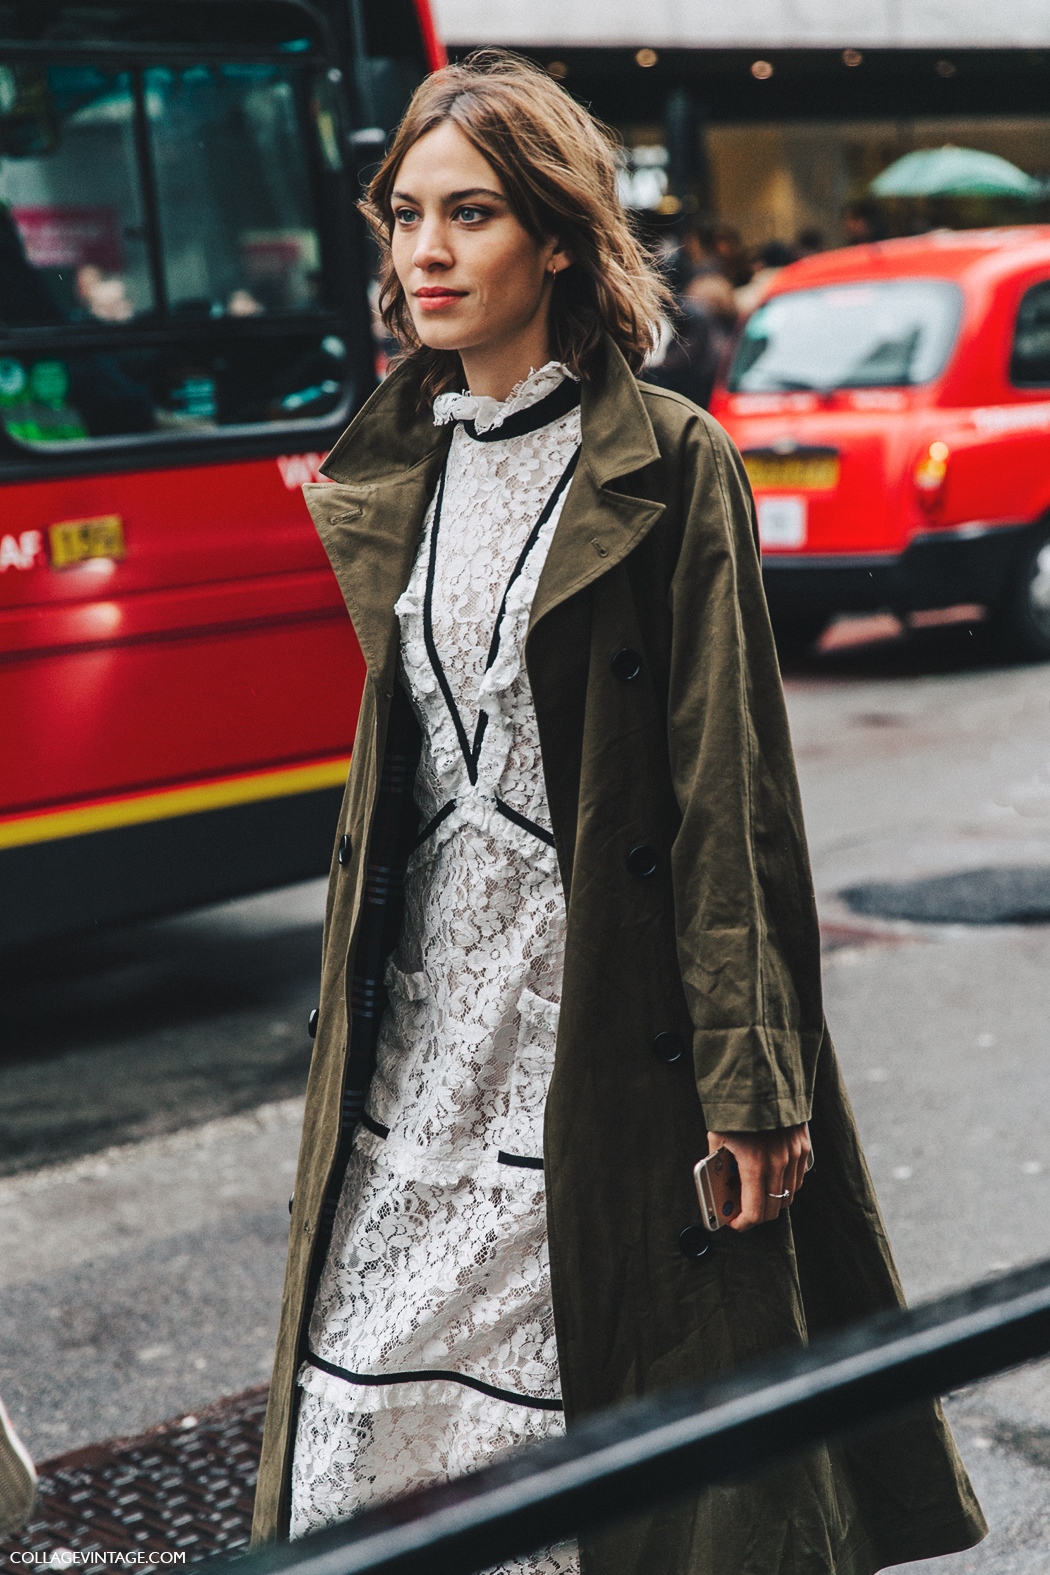 LFW-London_Fashion_Week_Fall_16-Street_Style-Collage_Vintage-Alexa_Chung-Trench_Coat-Cowboy_Boots-Erdem-Lace_Dress-11